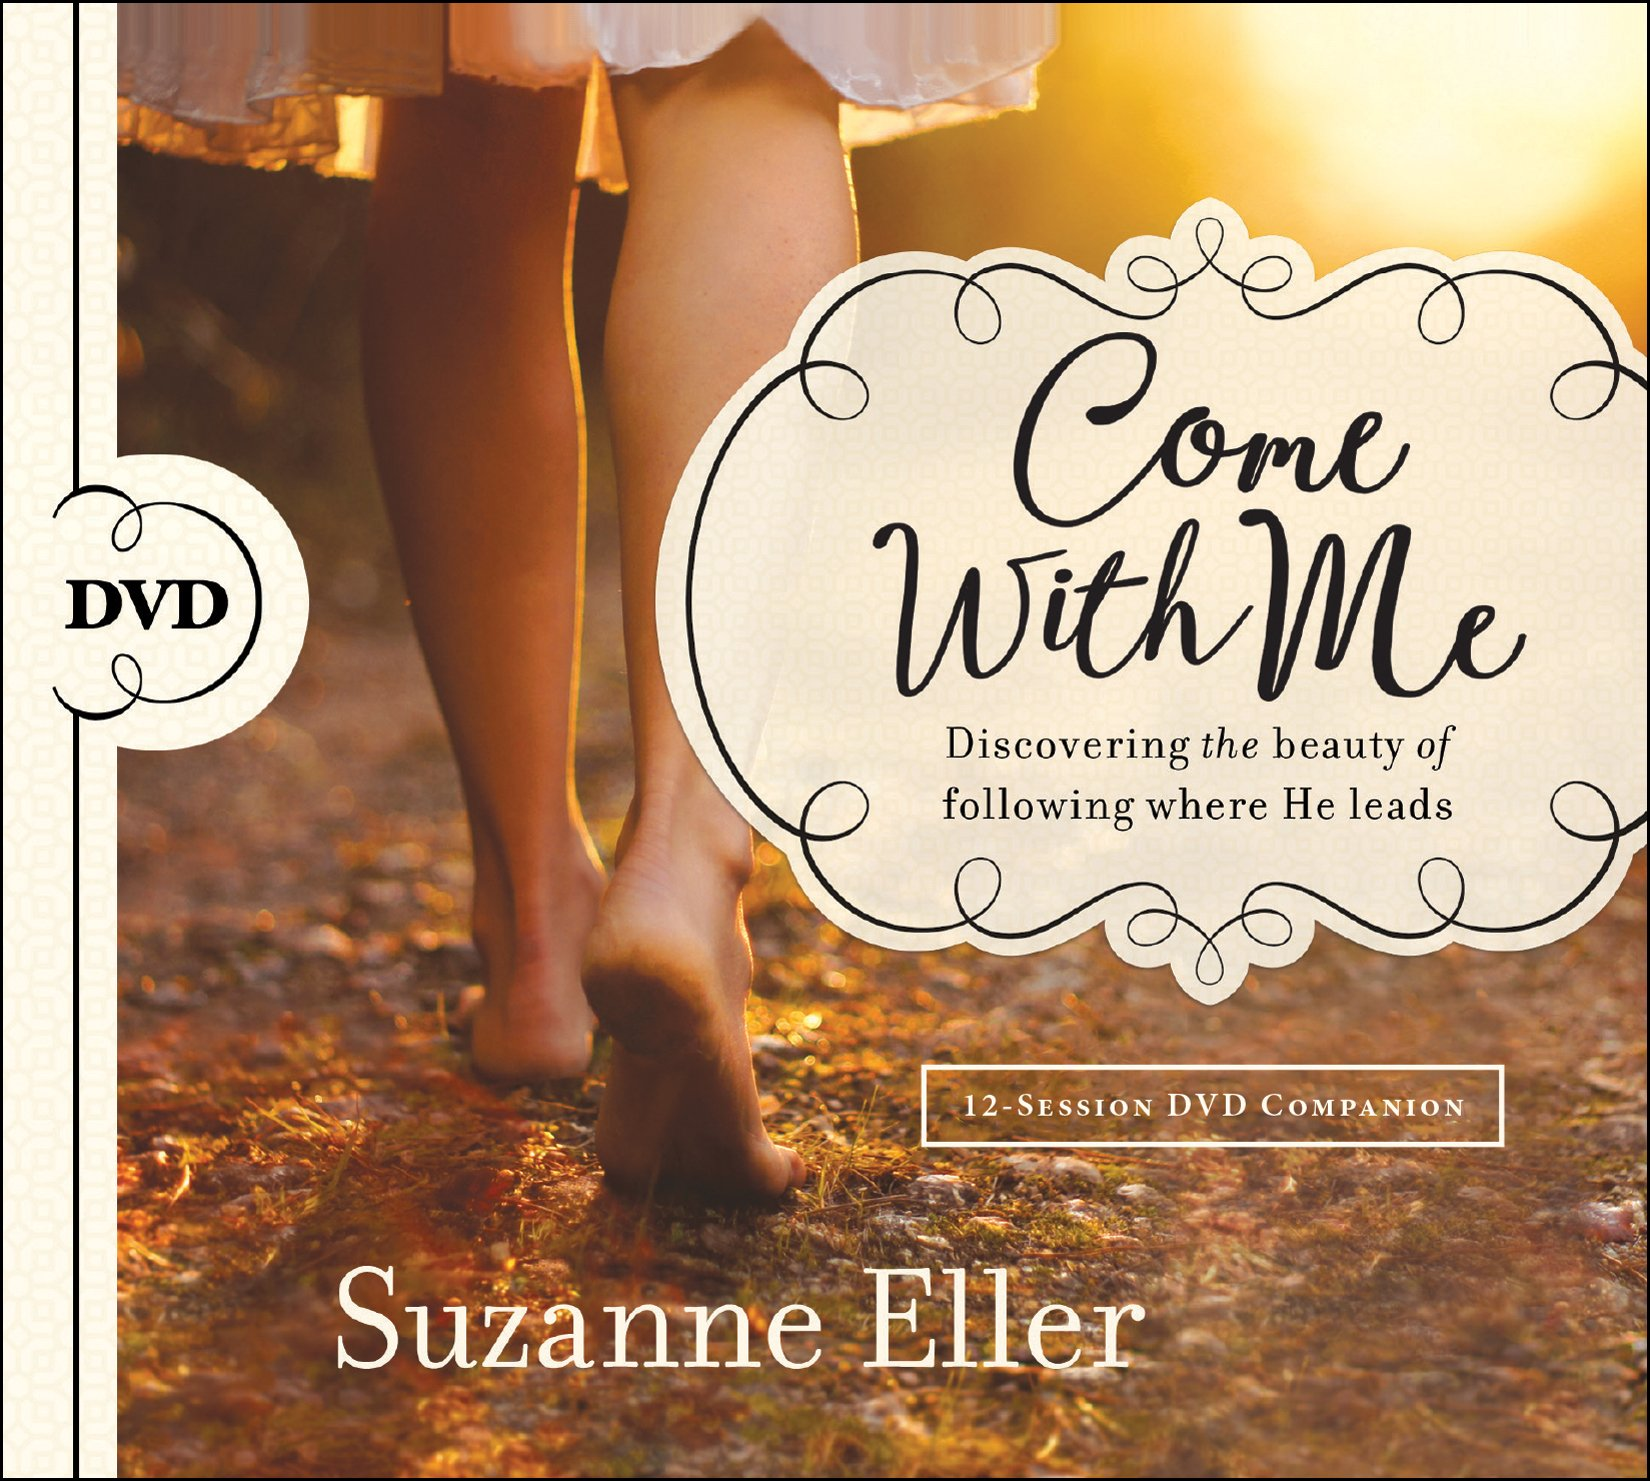 Come With Me: Discovering the Beauty of Following Where He Leads pdf